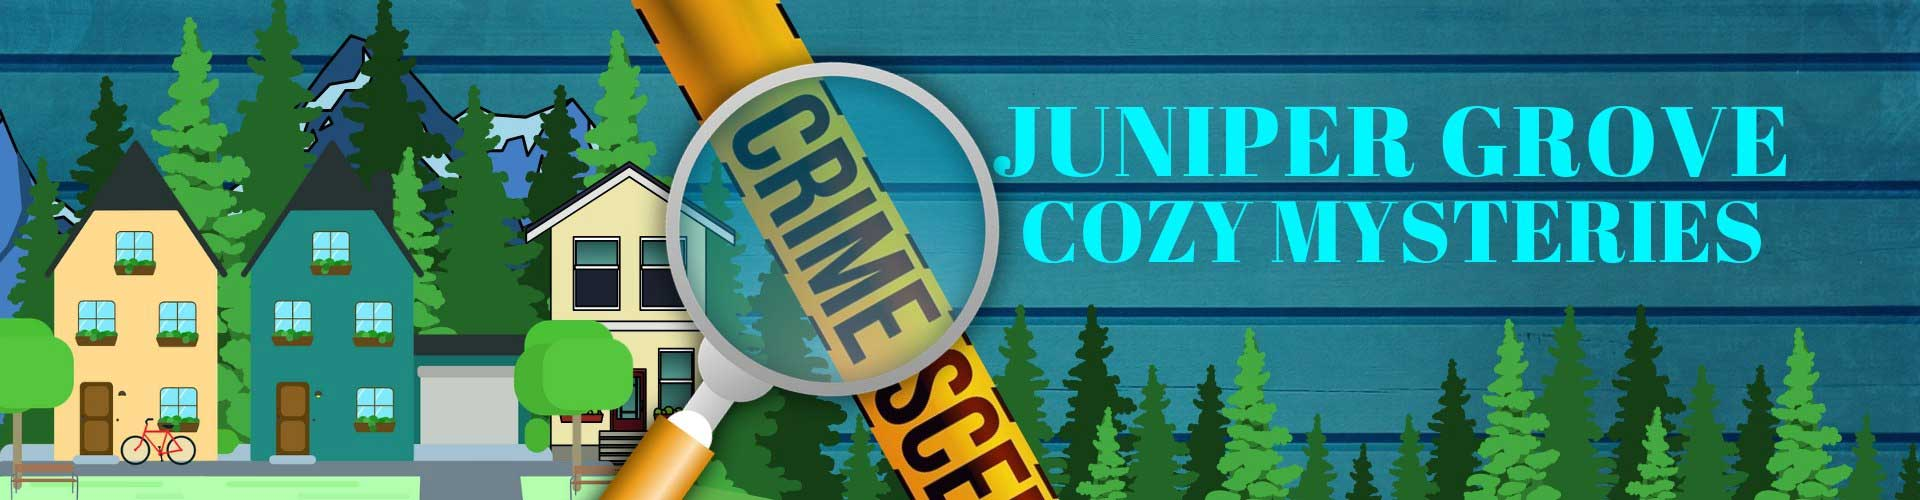 Juniper Grove - Cozy Mysteries